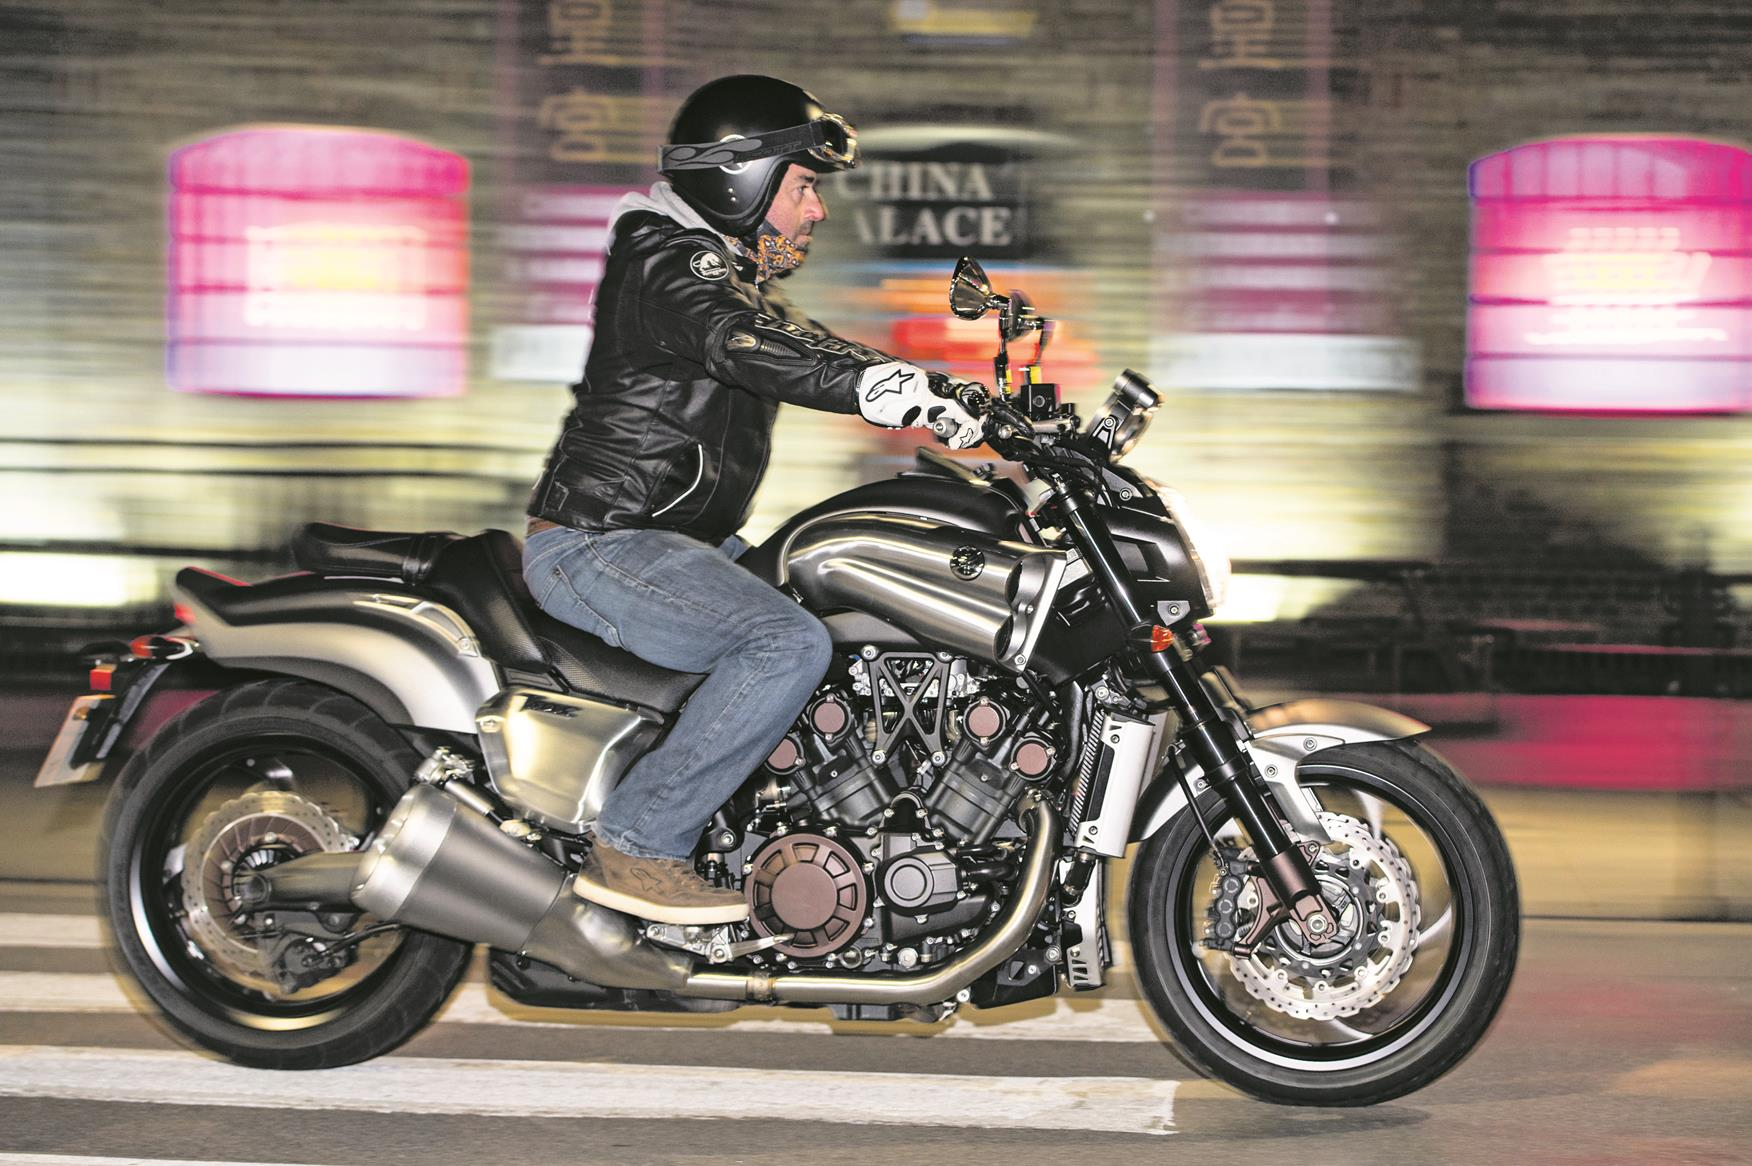 Riding the Yamaha VMAX at night